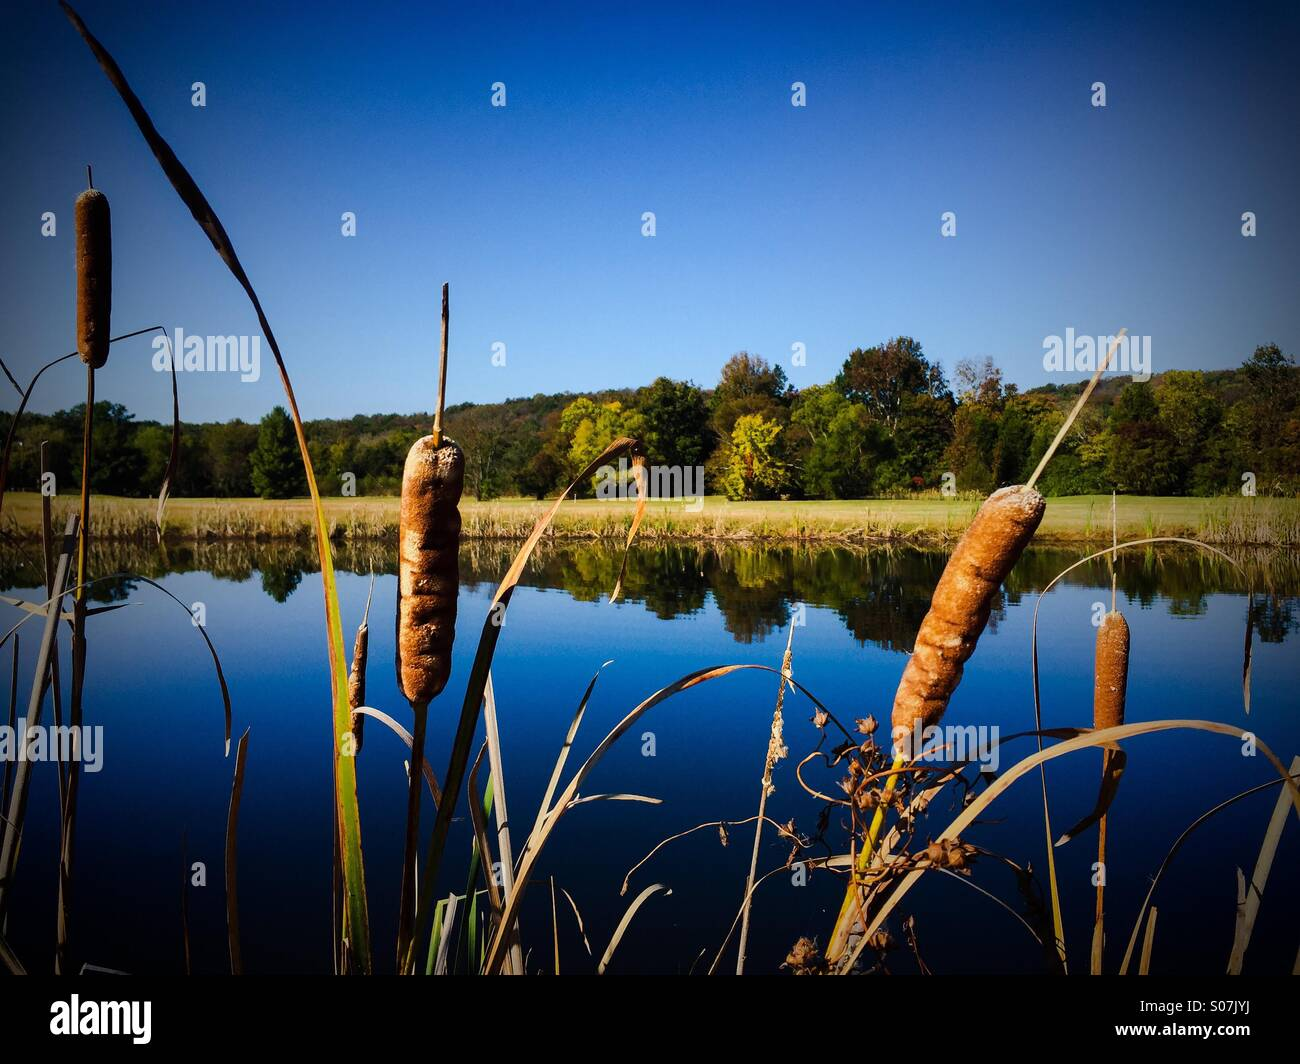 Alabama farm pond with golden cattails highlighted by early morning and autumn colors. - Stock Image